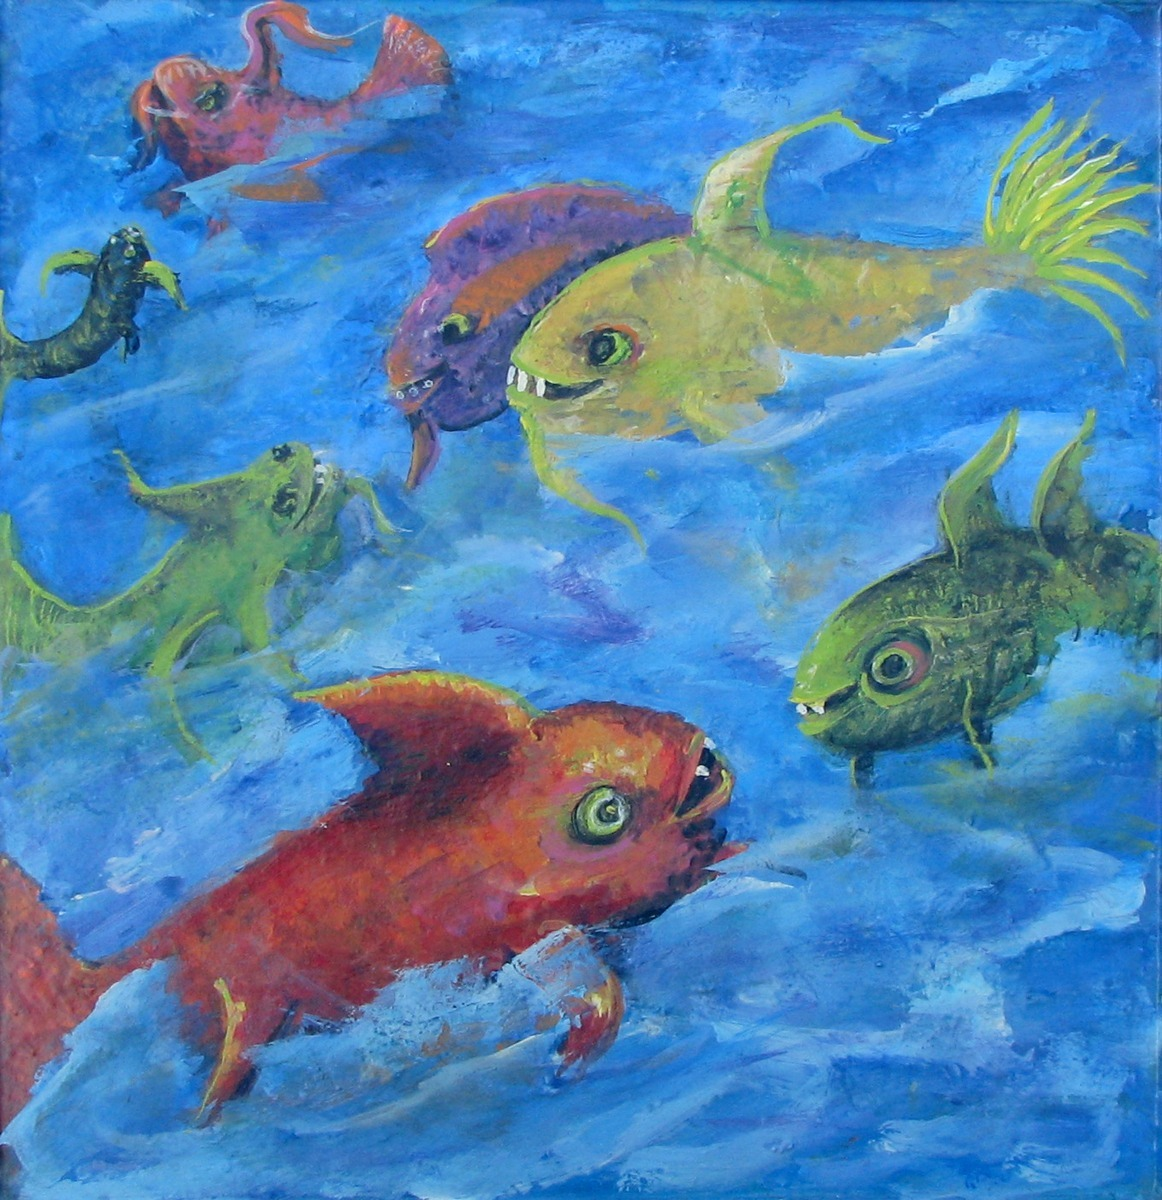 ocean, sea, fish, bright, colorful, primary colors, fantasy, sea life, animals (large view)